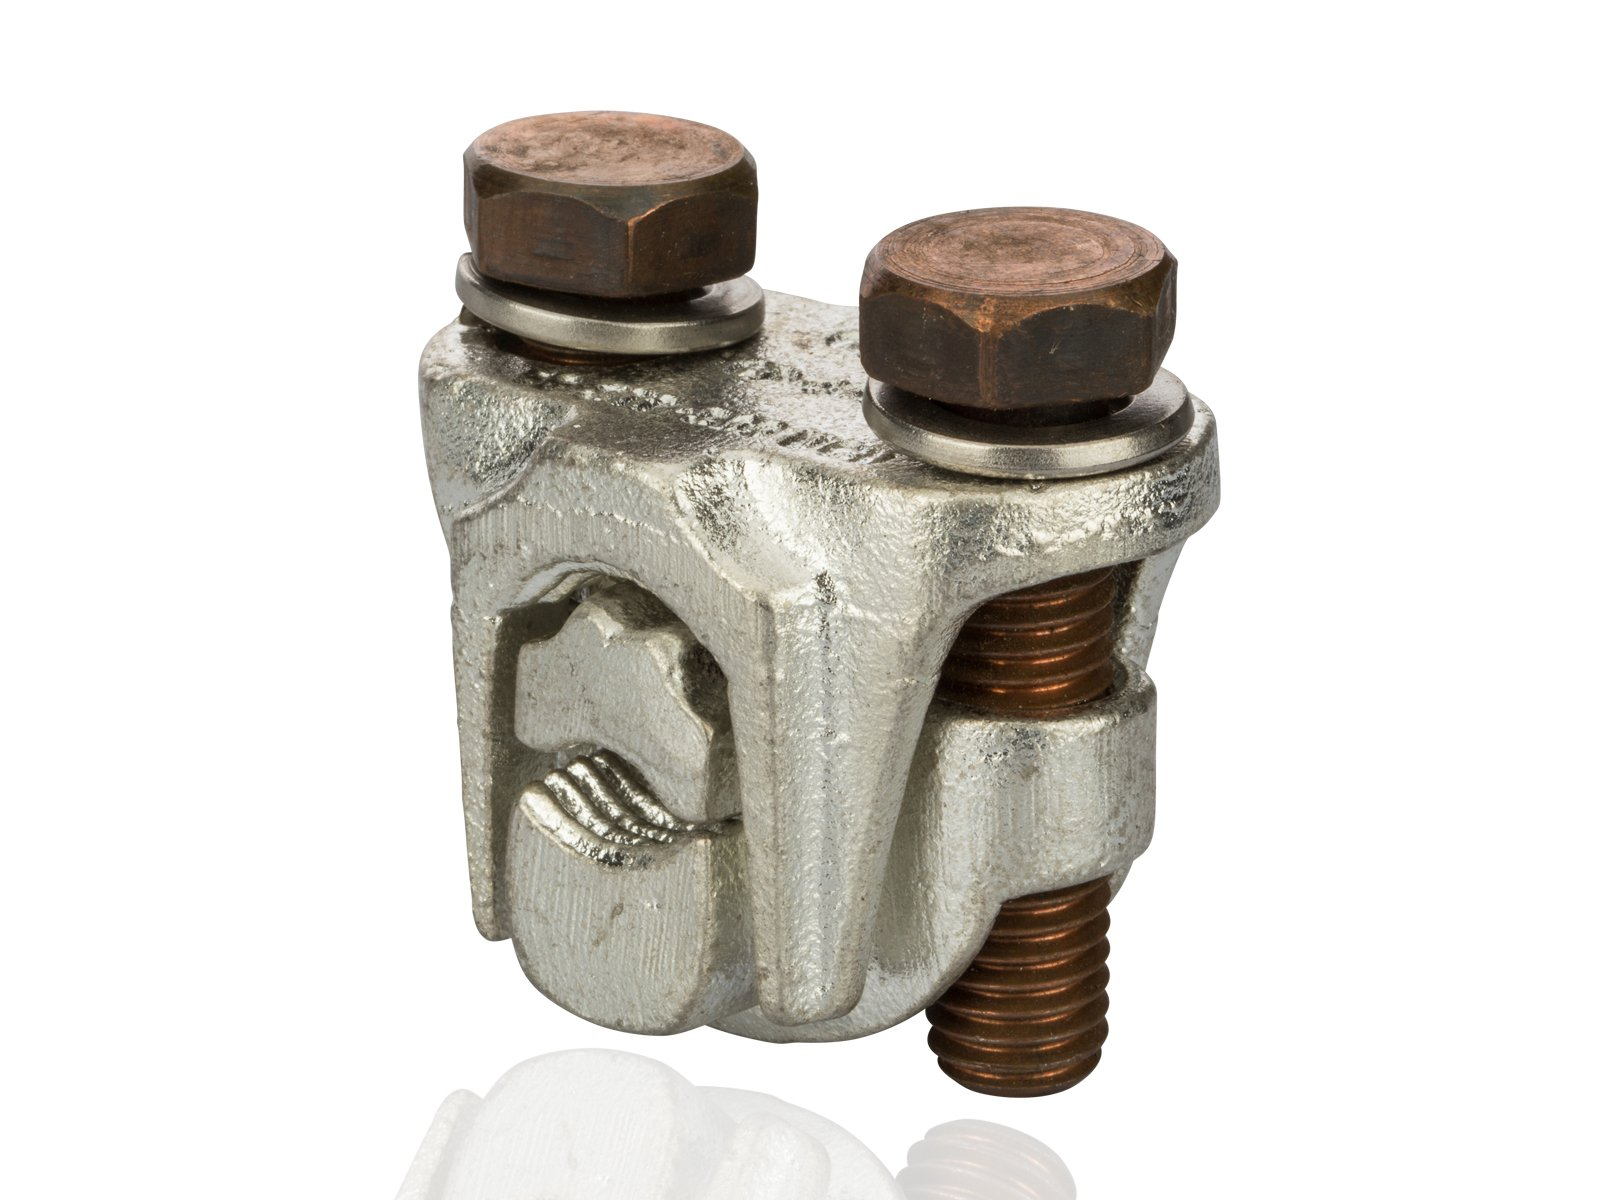 Tap Connector - Tap Connector - Two-Bolt Bronze-Plated for Aluminum, Copper and Steel, 500 MCM-350 MCM Main Wire Range, 500 MCM-4 sol Tap Wire Range by NSi Industries, LLC